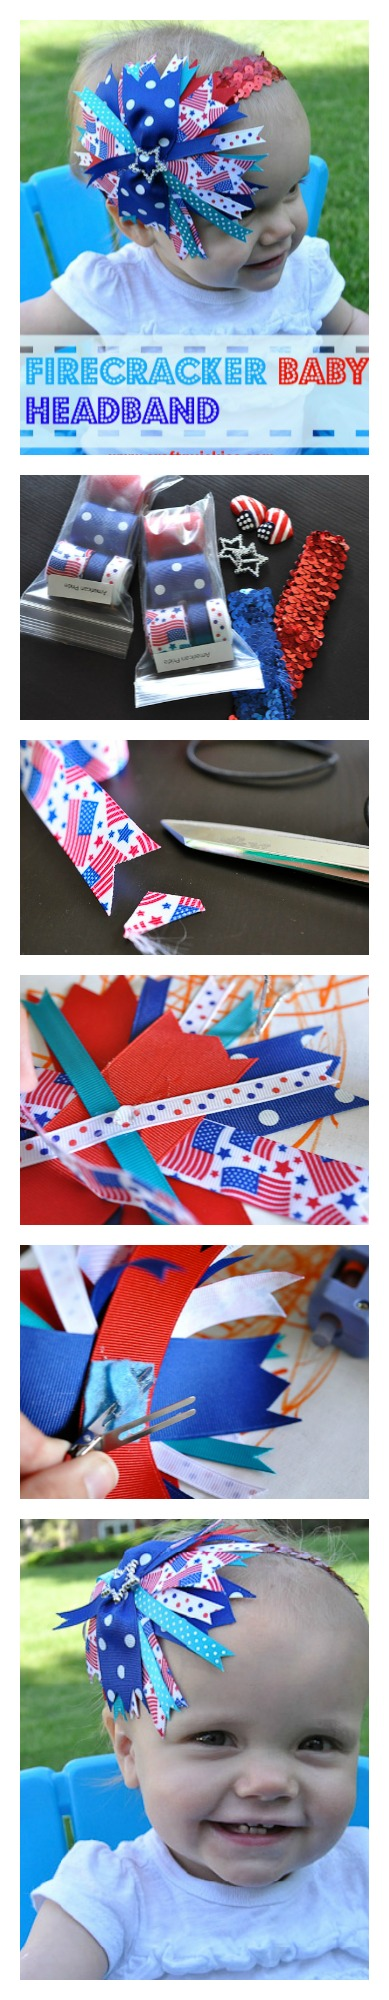 Firecracker Baby Headband Collage